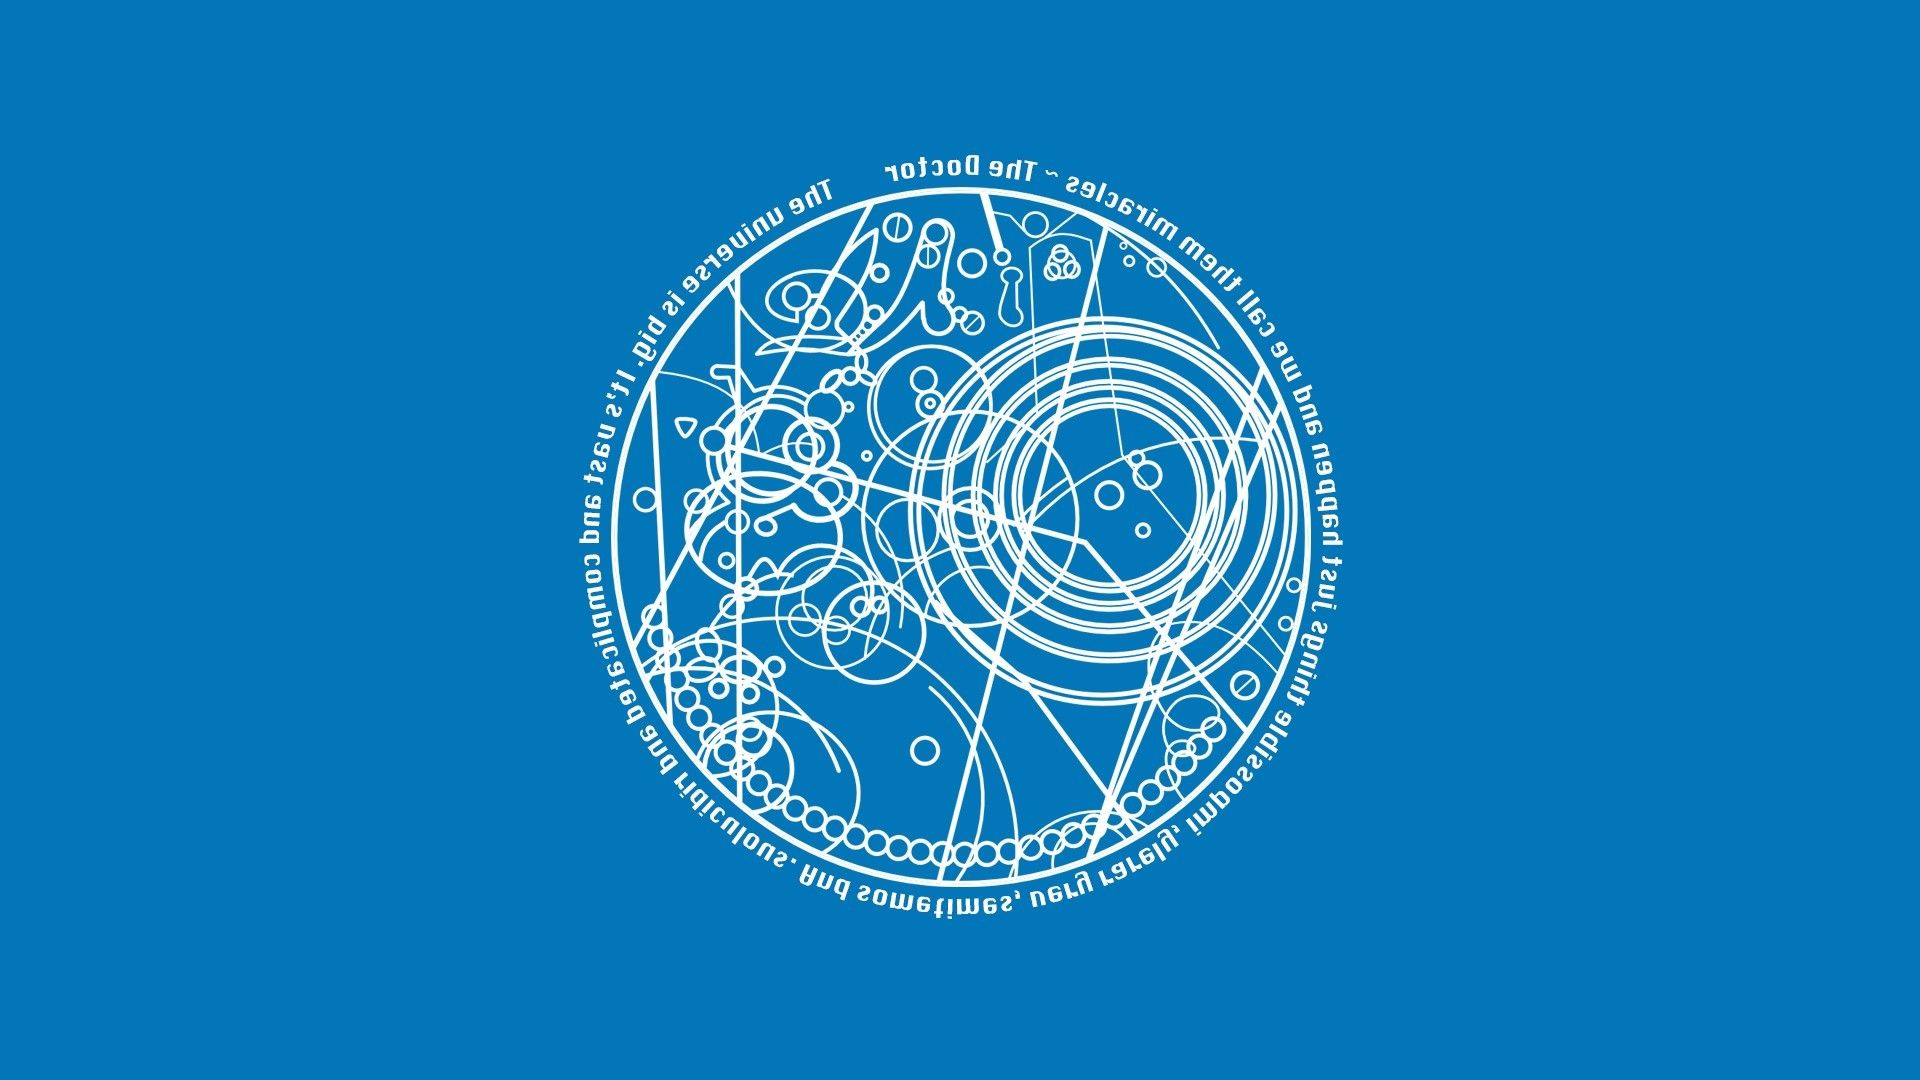 Doctor Who Circle Logo Logodix